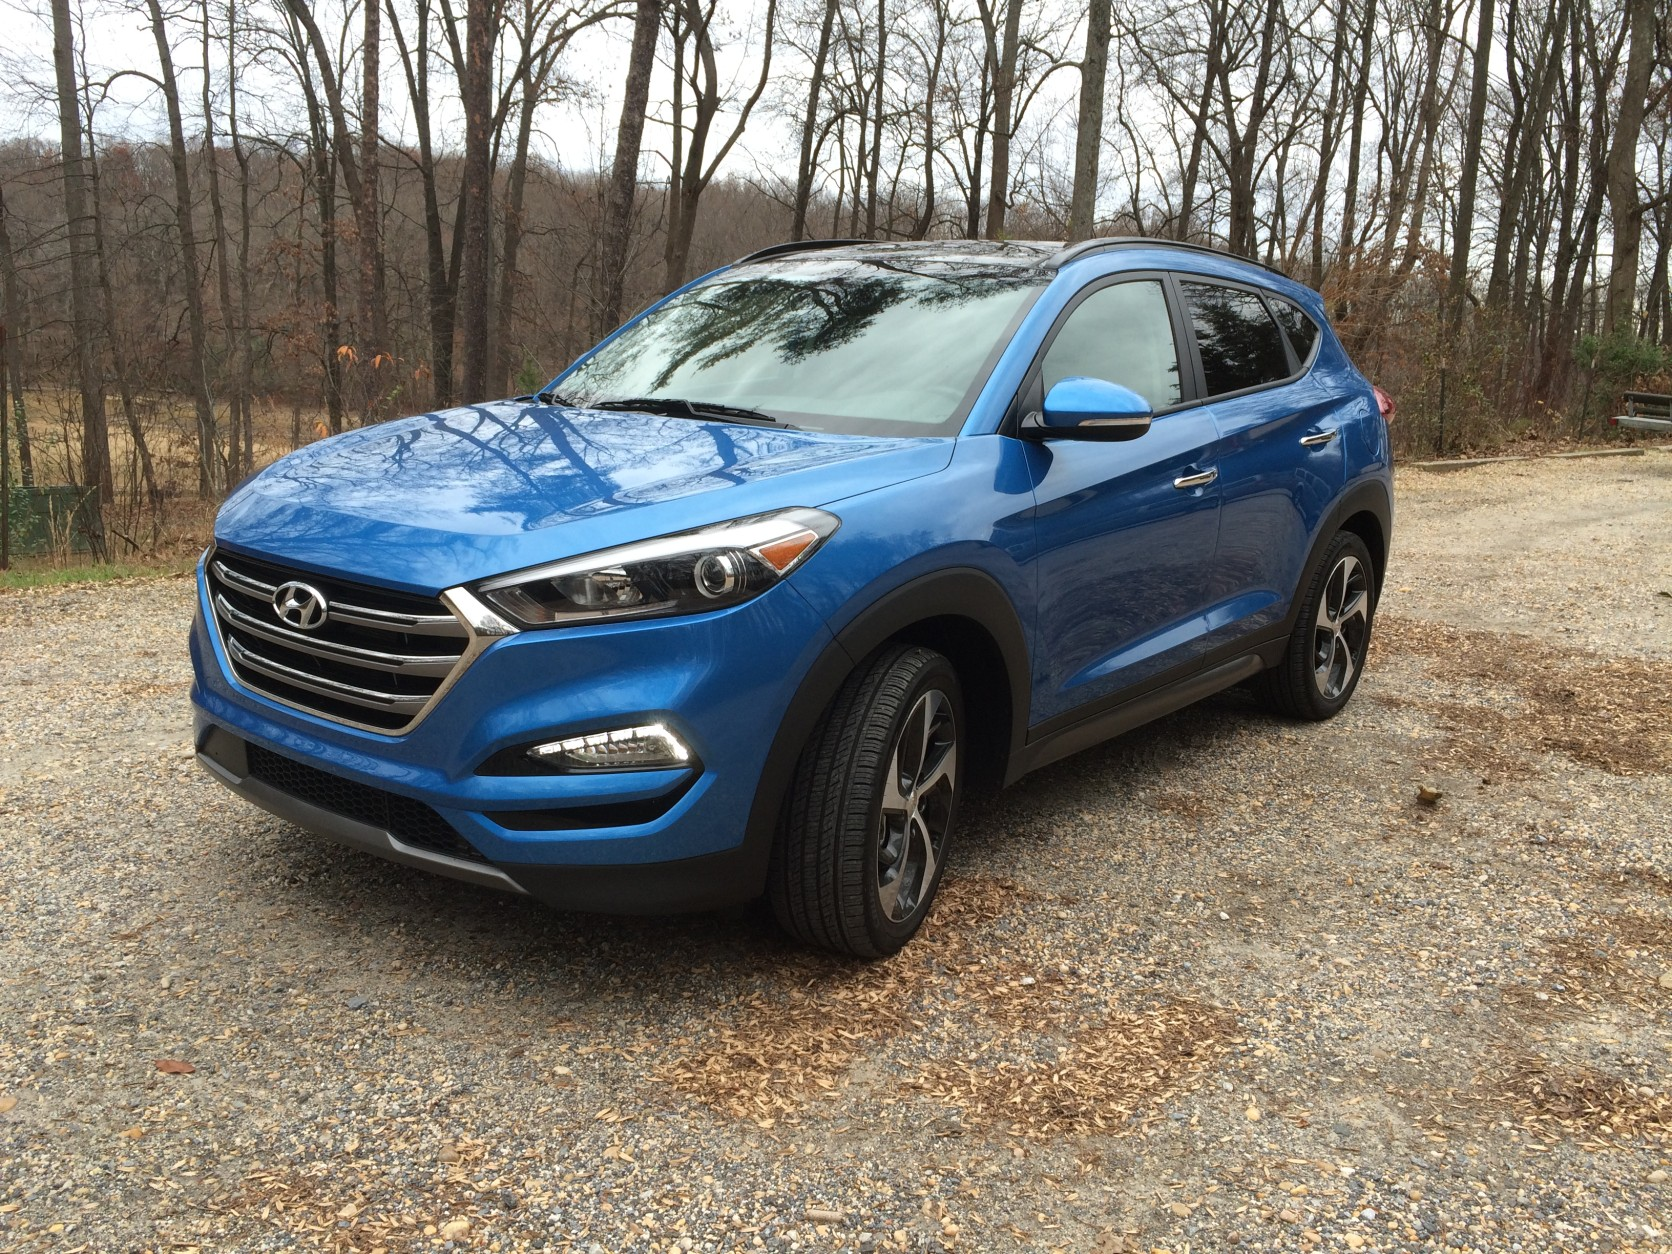 For the 2016 redesign, Hyundai redid the entire vehicle to make it more competitive in a very popular and growing segment. (WTOP/Mike Parris)